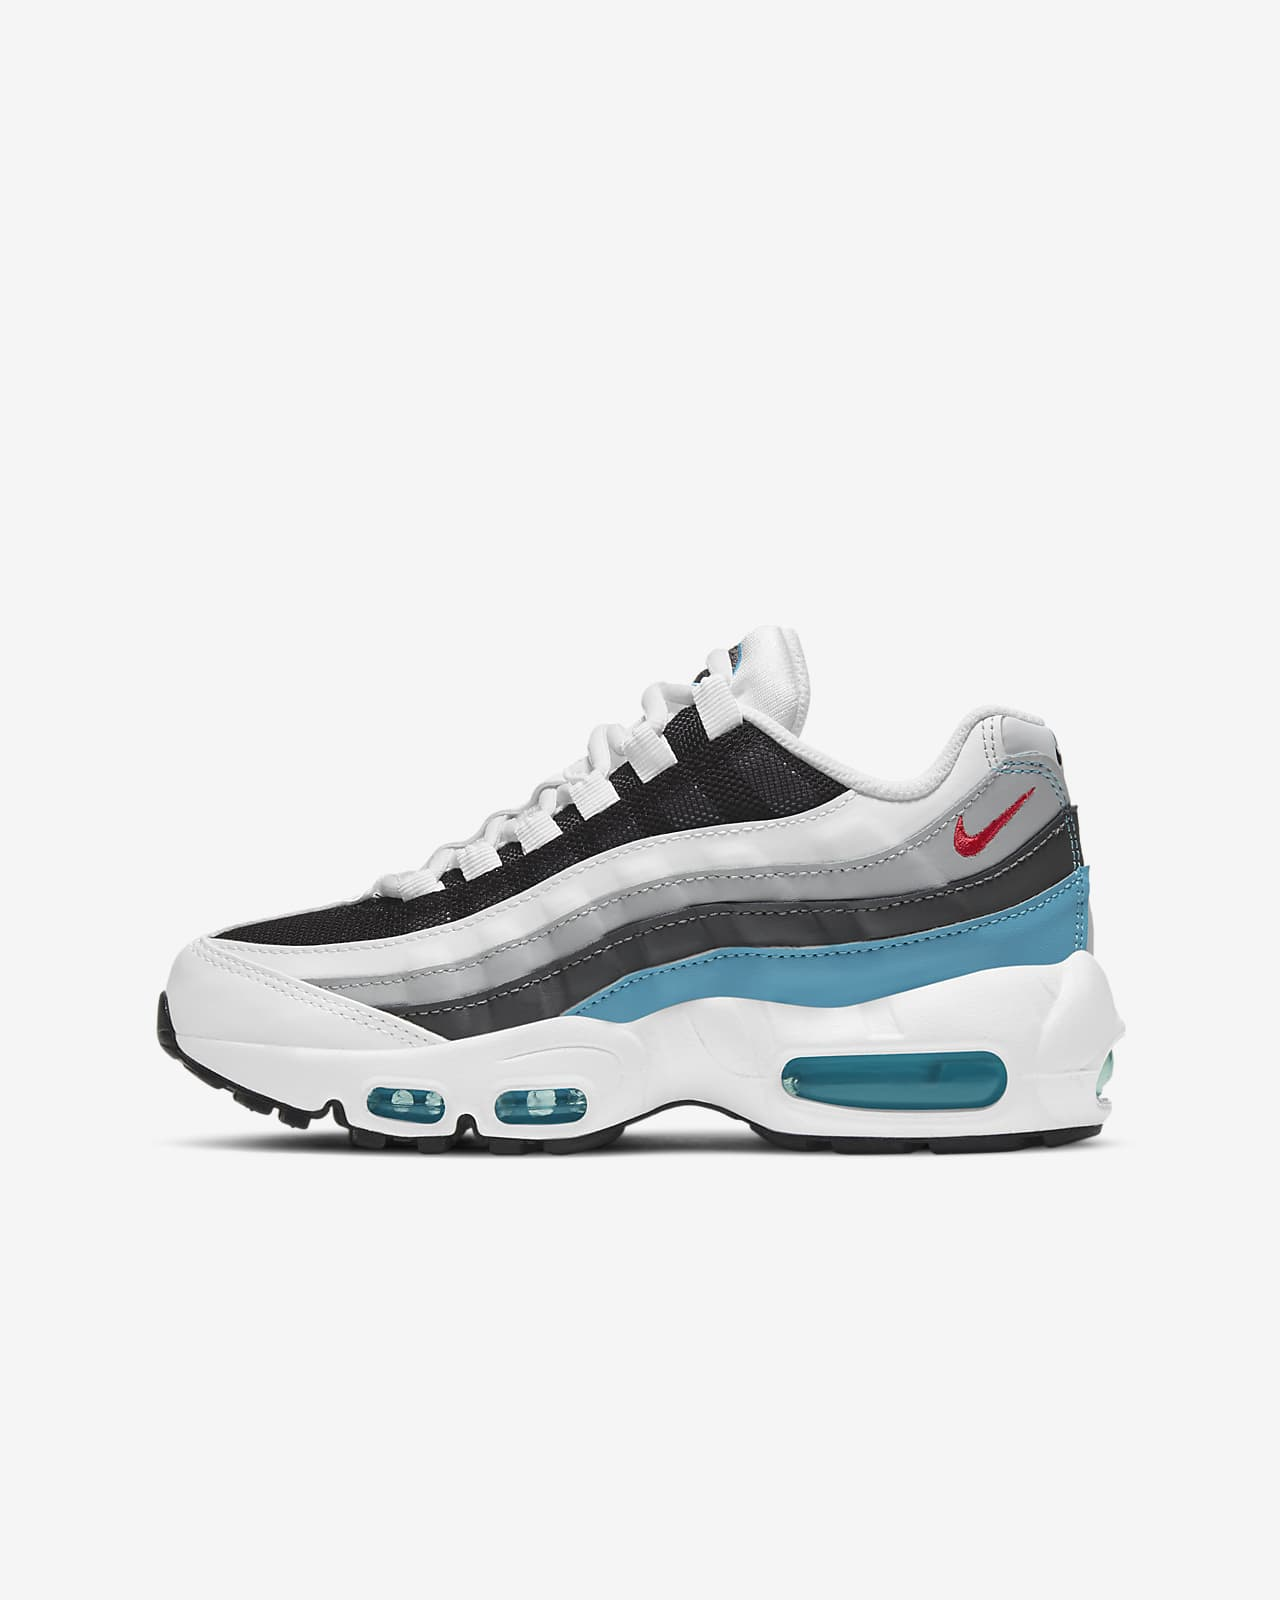 Sapatilhas Nike Air Max 95 Recraft Júnior